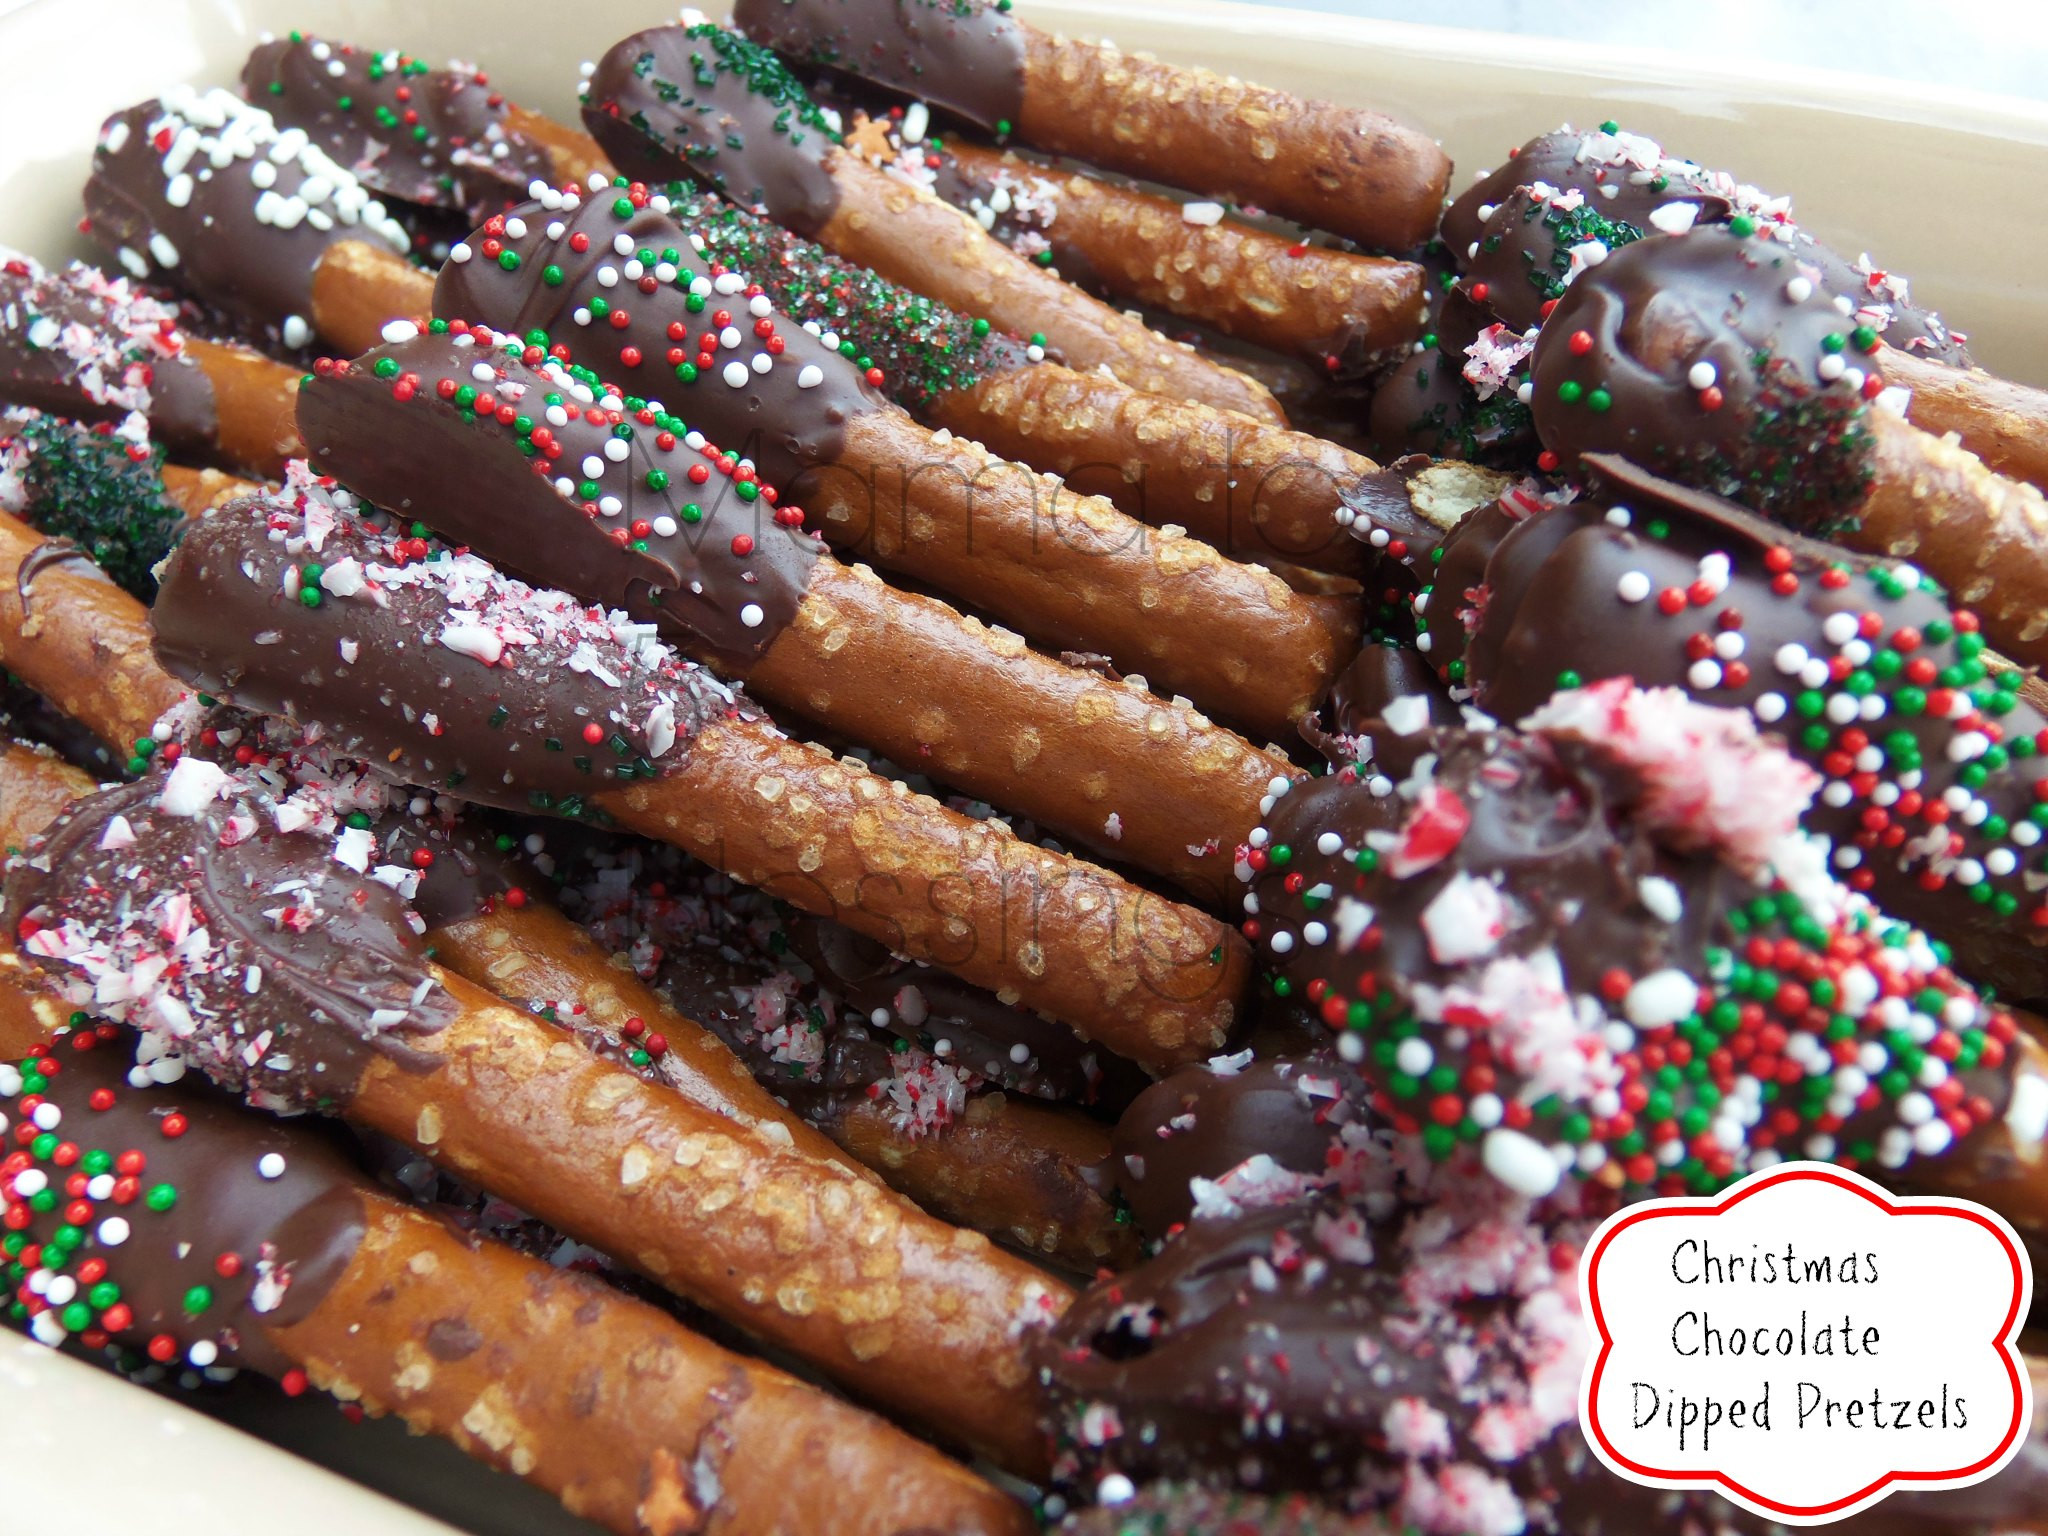 Christmas Dipped Pretzels  Chocolate Dipped Pretzels Recipe Mama to 6 Blessings